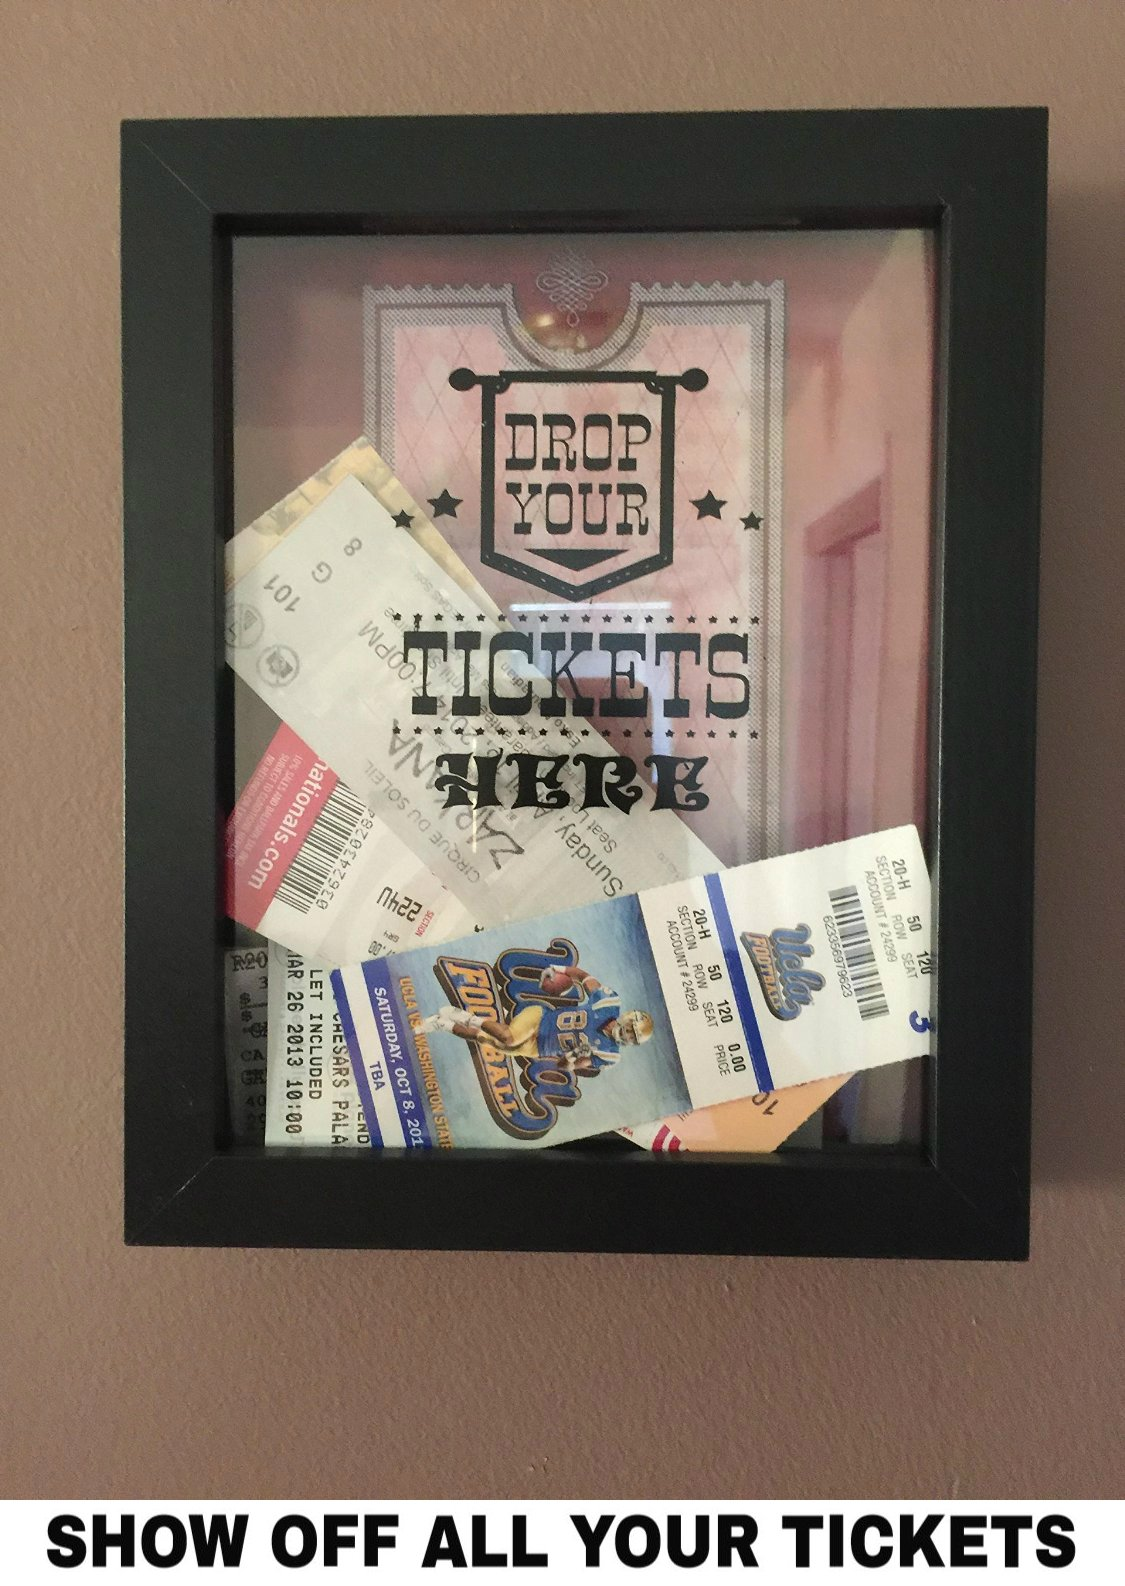 ticket shadow box memento frame large slot on top of frame memory box 762047701226 ebay. Black Bedroom Furniture Sets. Home Design Ideas